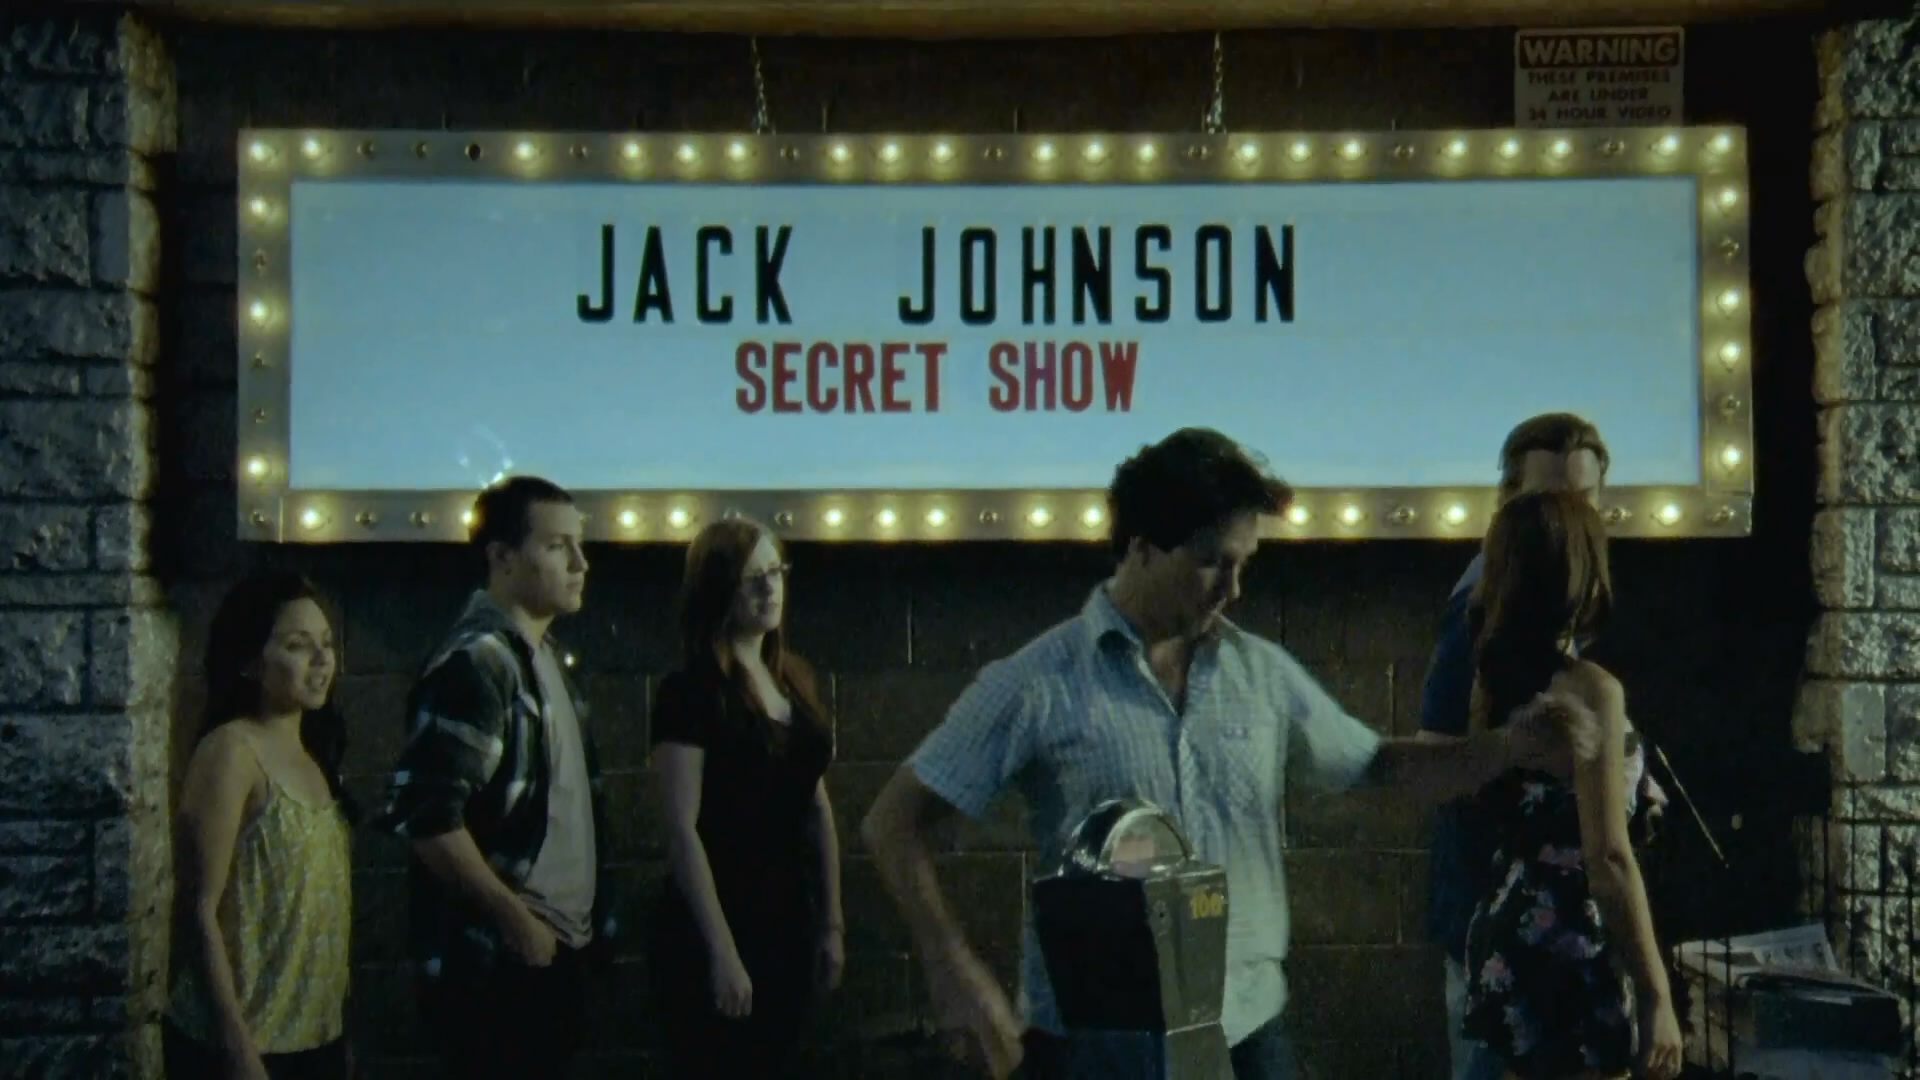 Jack Johnson - At Or With Me_(1080p).mp4_snapshot_00.04_[2011.03.24_13.40.22].jpg